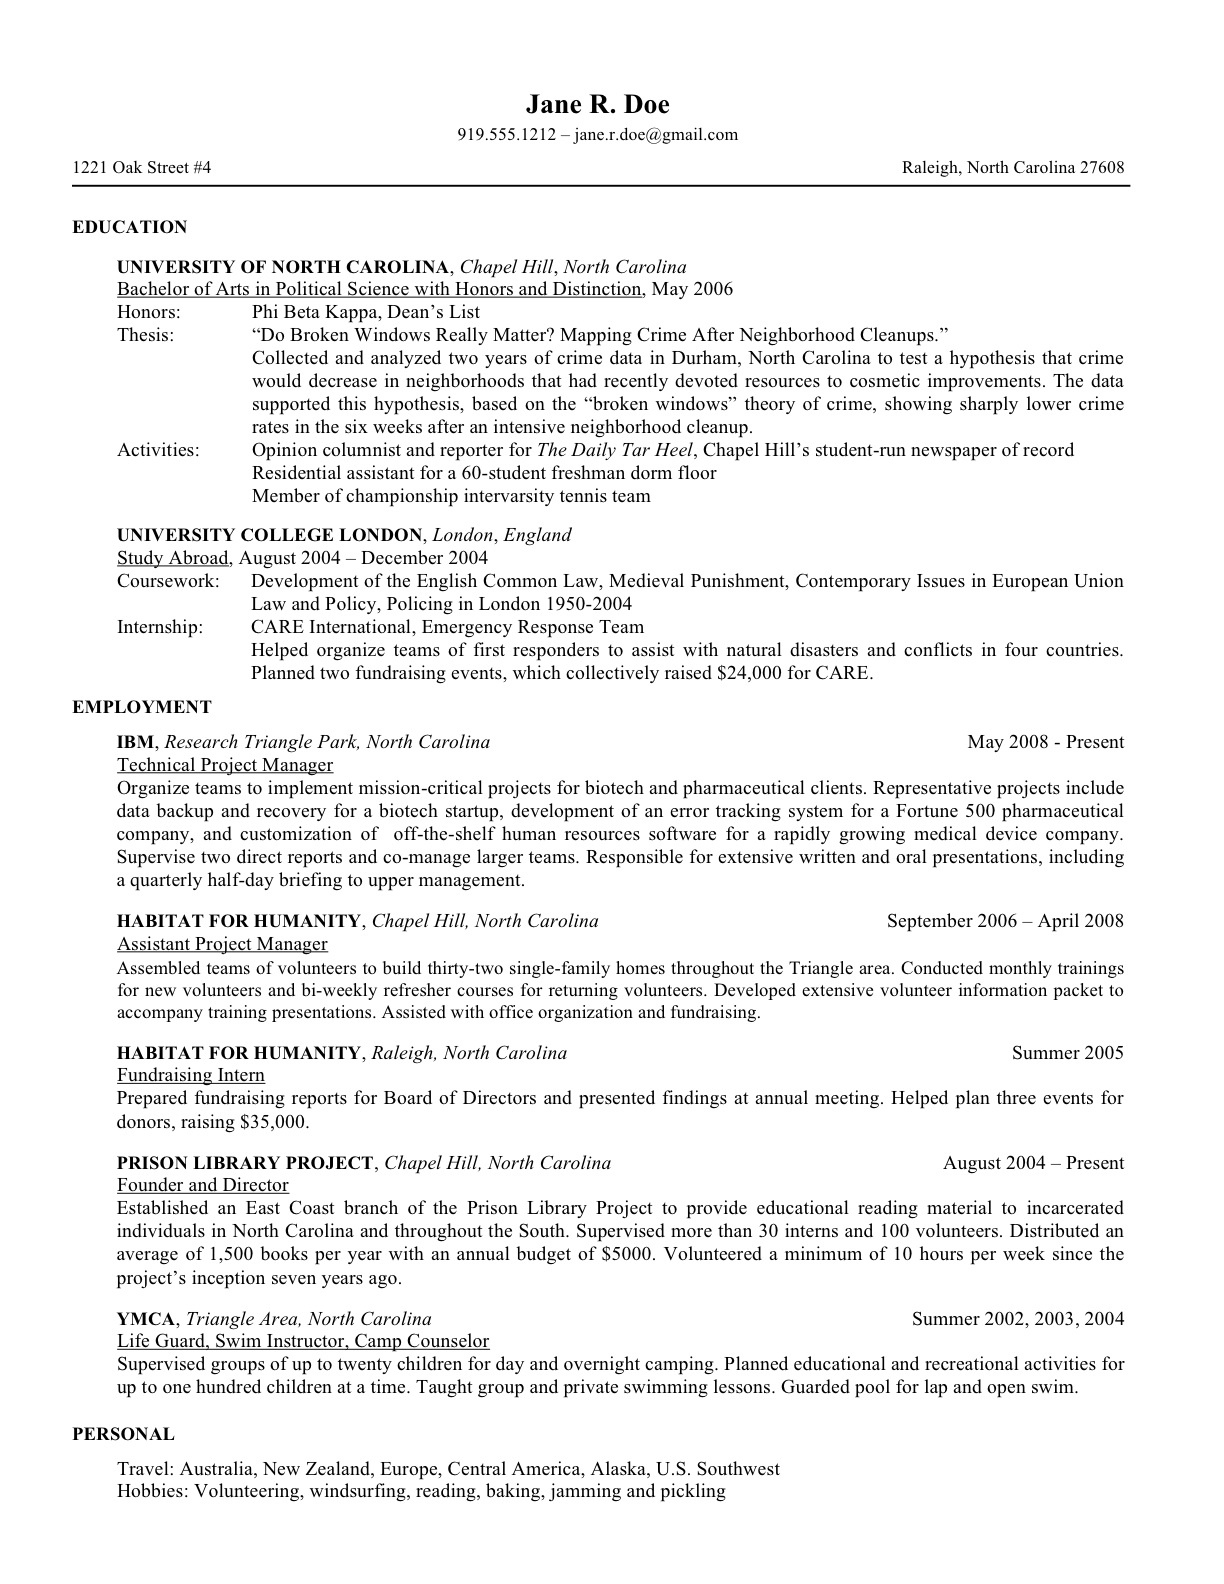 law school resume templates prepping your for of university at criminal justice samples Resume Criminal Justice Resume Samples Undergraduate